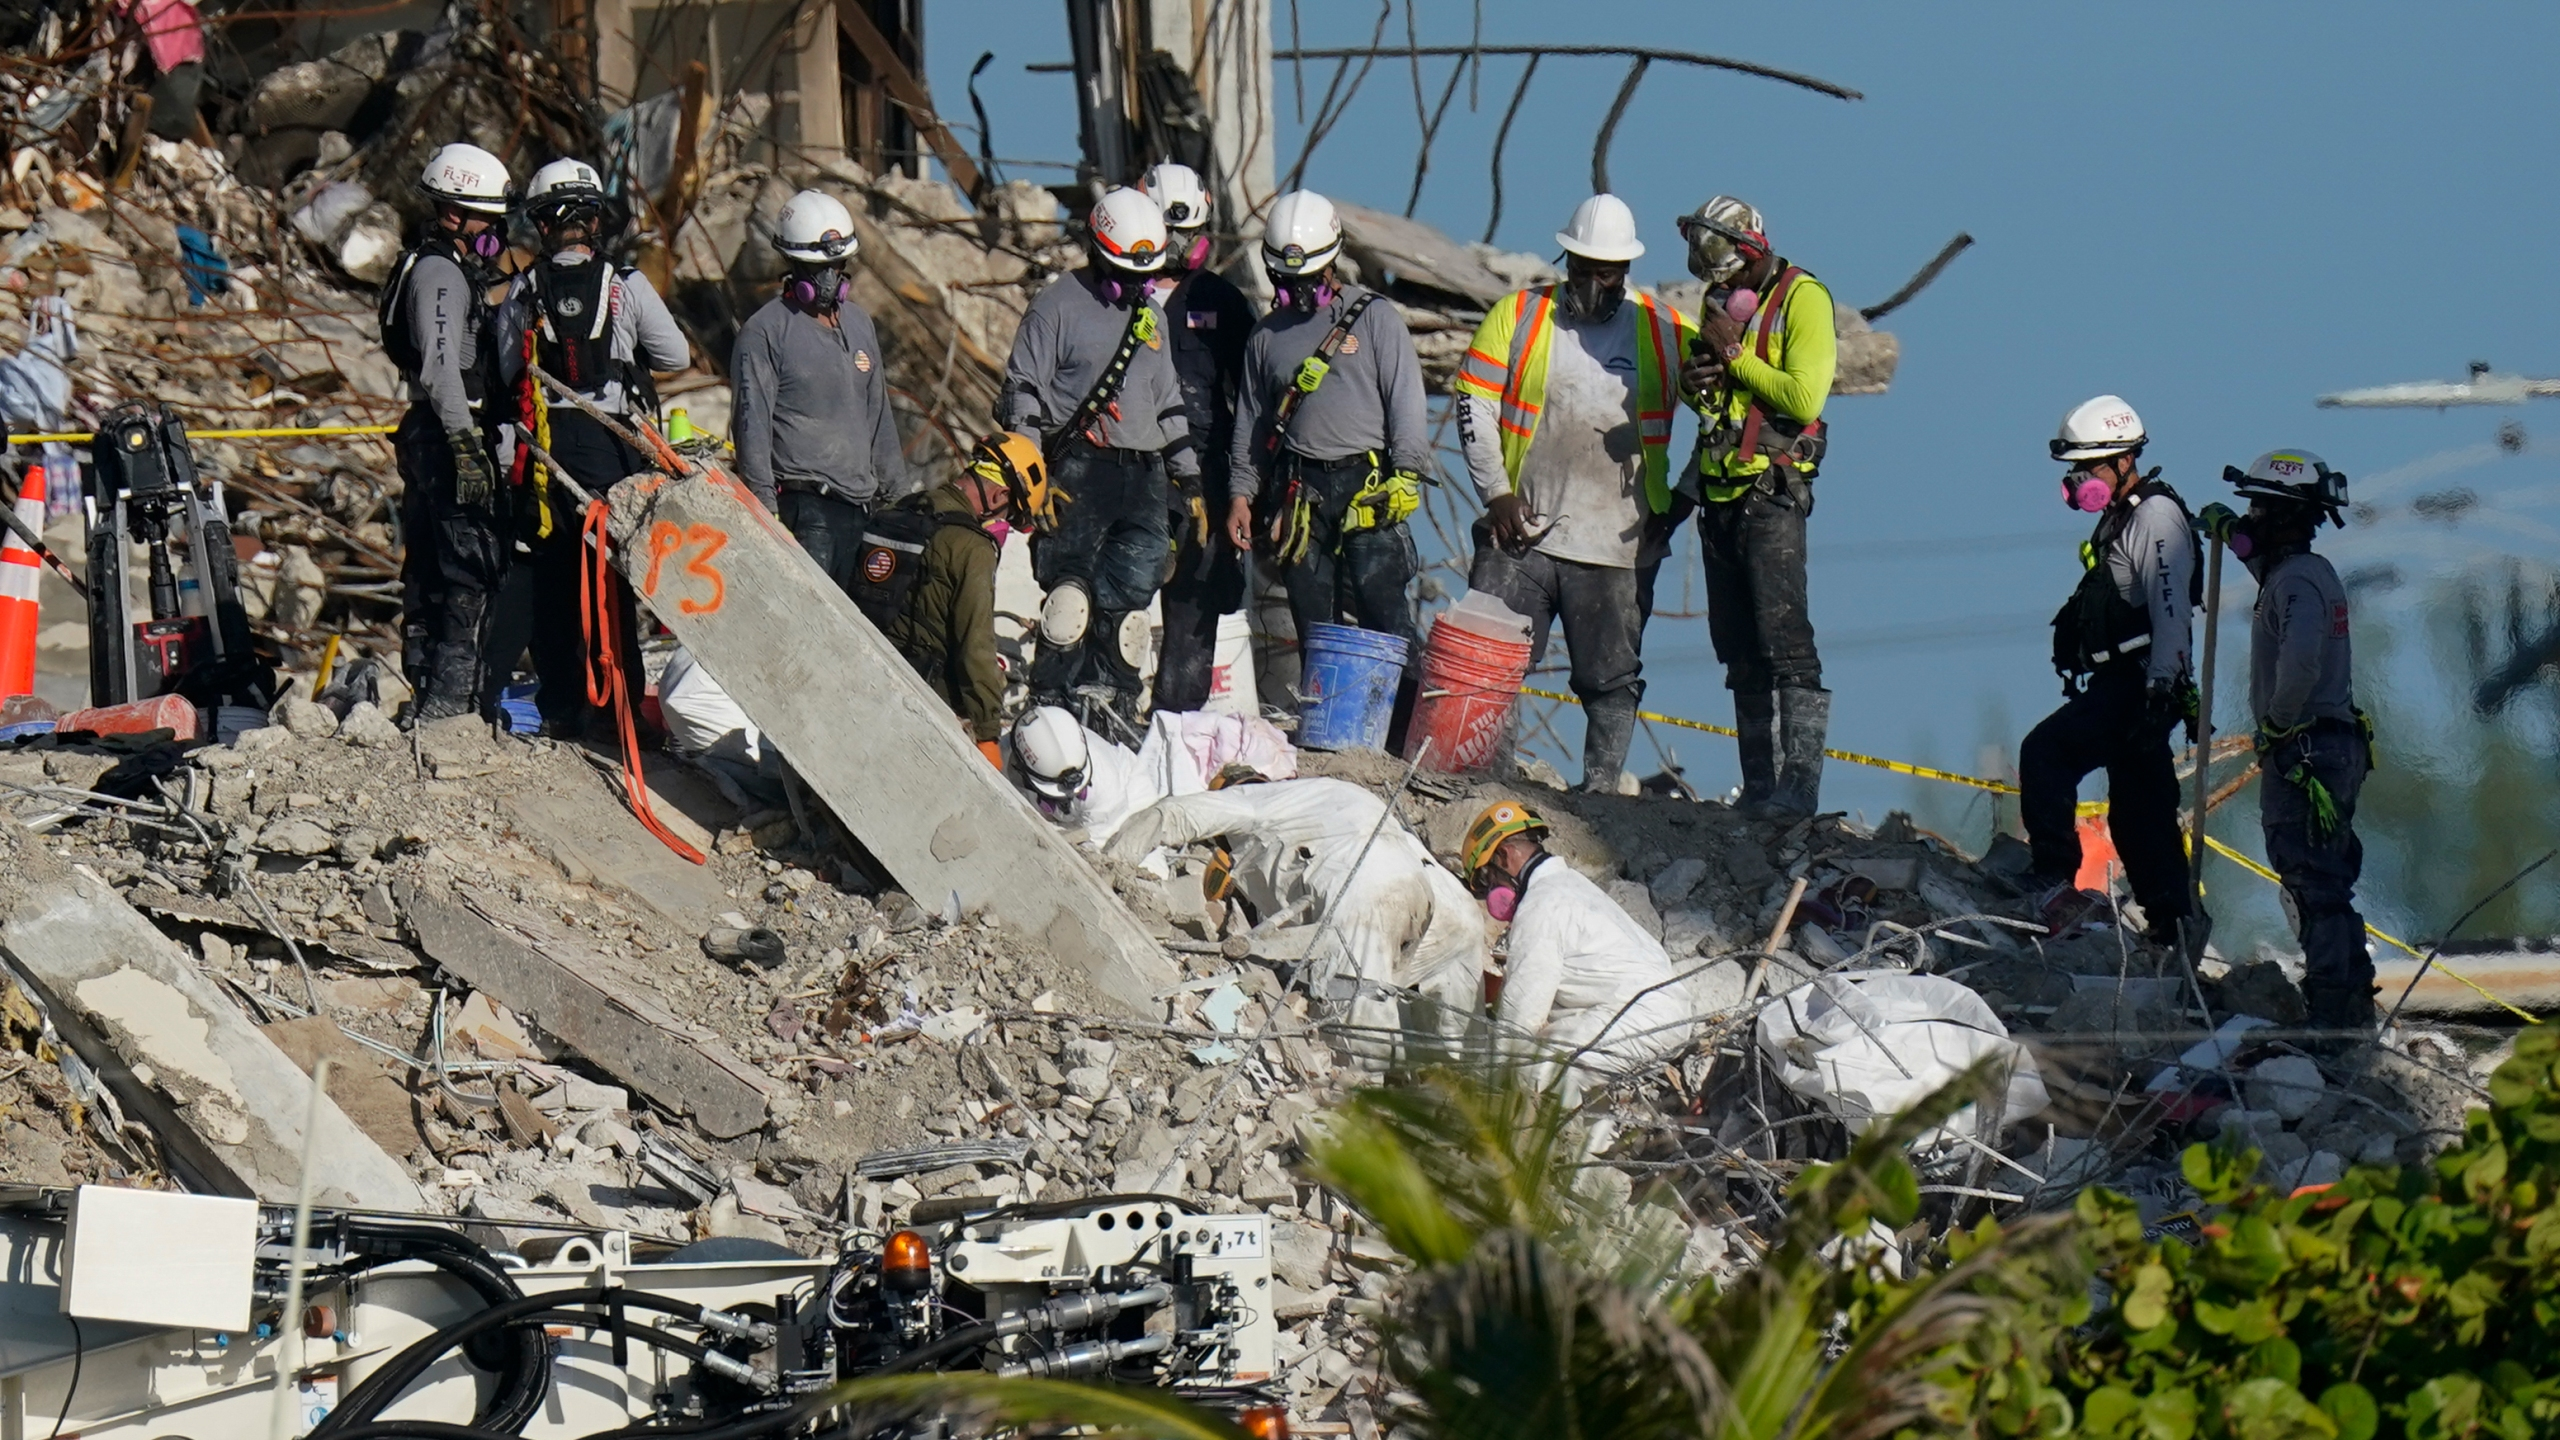 A team works to extricate remains as search and rescue personnel look on, atop the rubble at the Champlain Towers South condo building where scores of people remain missing more than a week after it partially collapsed, Friday, July 2, 2021, in Surfside, Fla. Rescue efforts resumed Thursday evening after being halted for most of the day over concerns about the stability of the remaining structure.(AP Photo/Mark Humphrey)